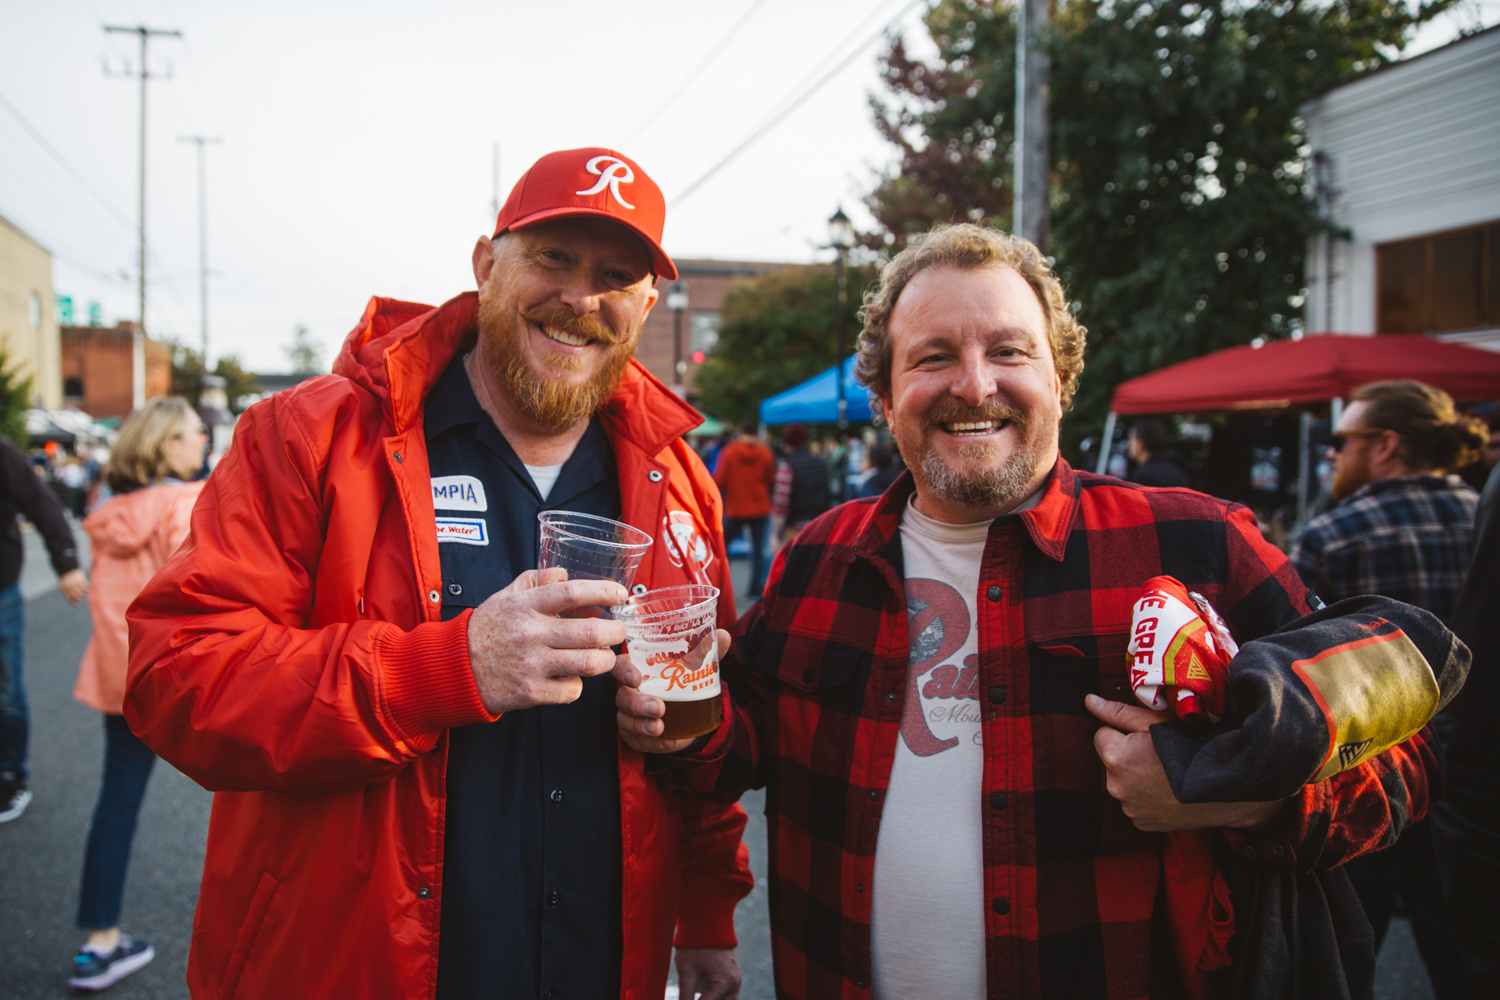 "Beer enthusiasts were treated to a free event in Georgetown to celebrate 'R Day', an annual celebration of Rainier Beer's rich heritage. The day is filled with community, music and awesome merchandise. Patron's donned clothes, hats, jackets, emblazoned with the iconic 'R', all the while sipping delicious brews, including a special, limited release ""R-Town Red Ale,"" in collaboration with Georgetown Brewing Company. { }(Image: Ryan McBoyle / Seattle Refined).{ }"